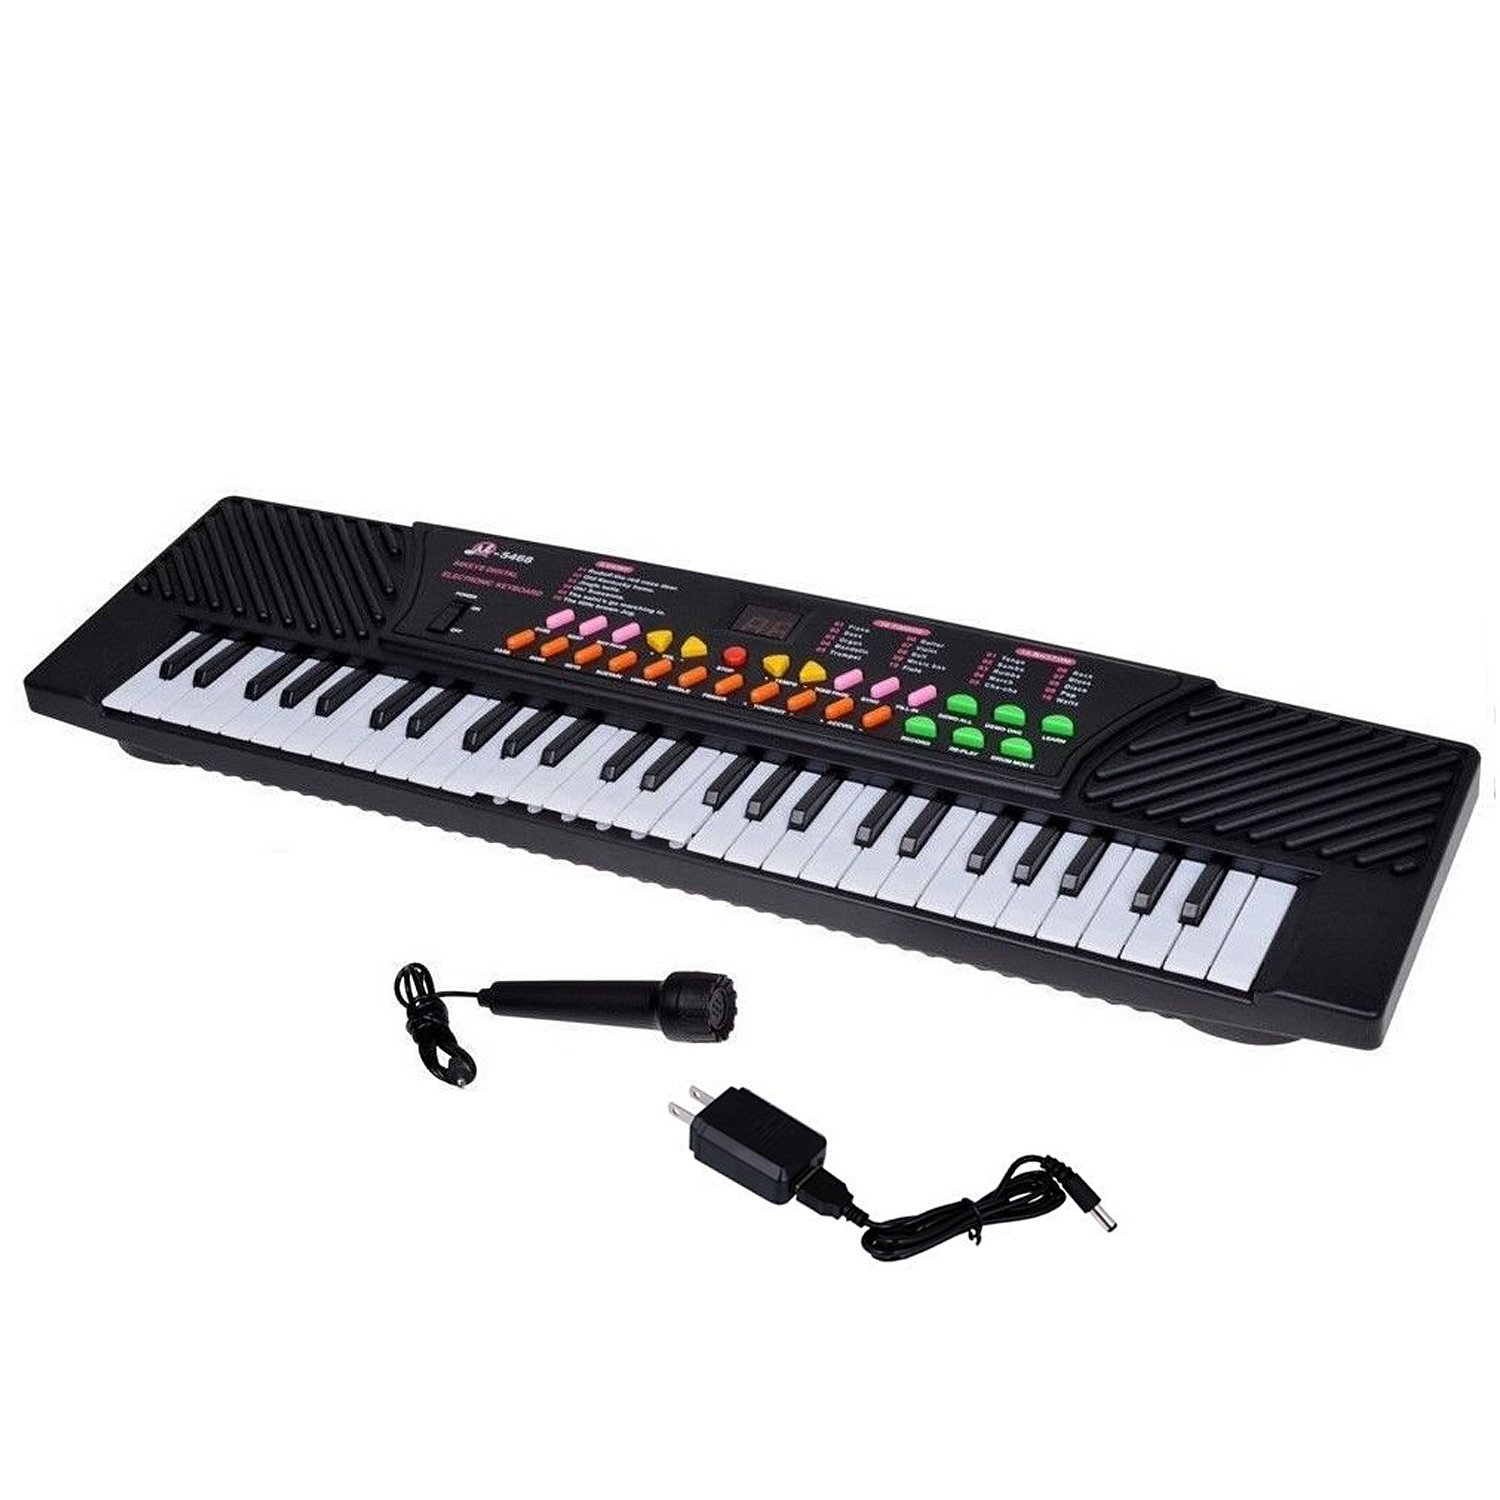 Big Lighting Deals 54 Keys Children's Keyboard Electronic Musical Piano for Beginners and Kids with External Speaker/Microphone & Power Adapter